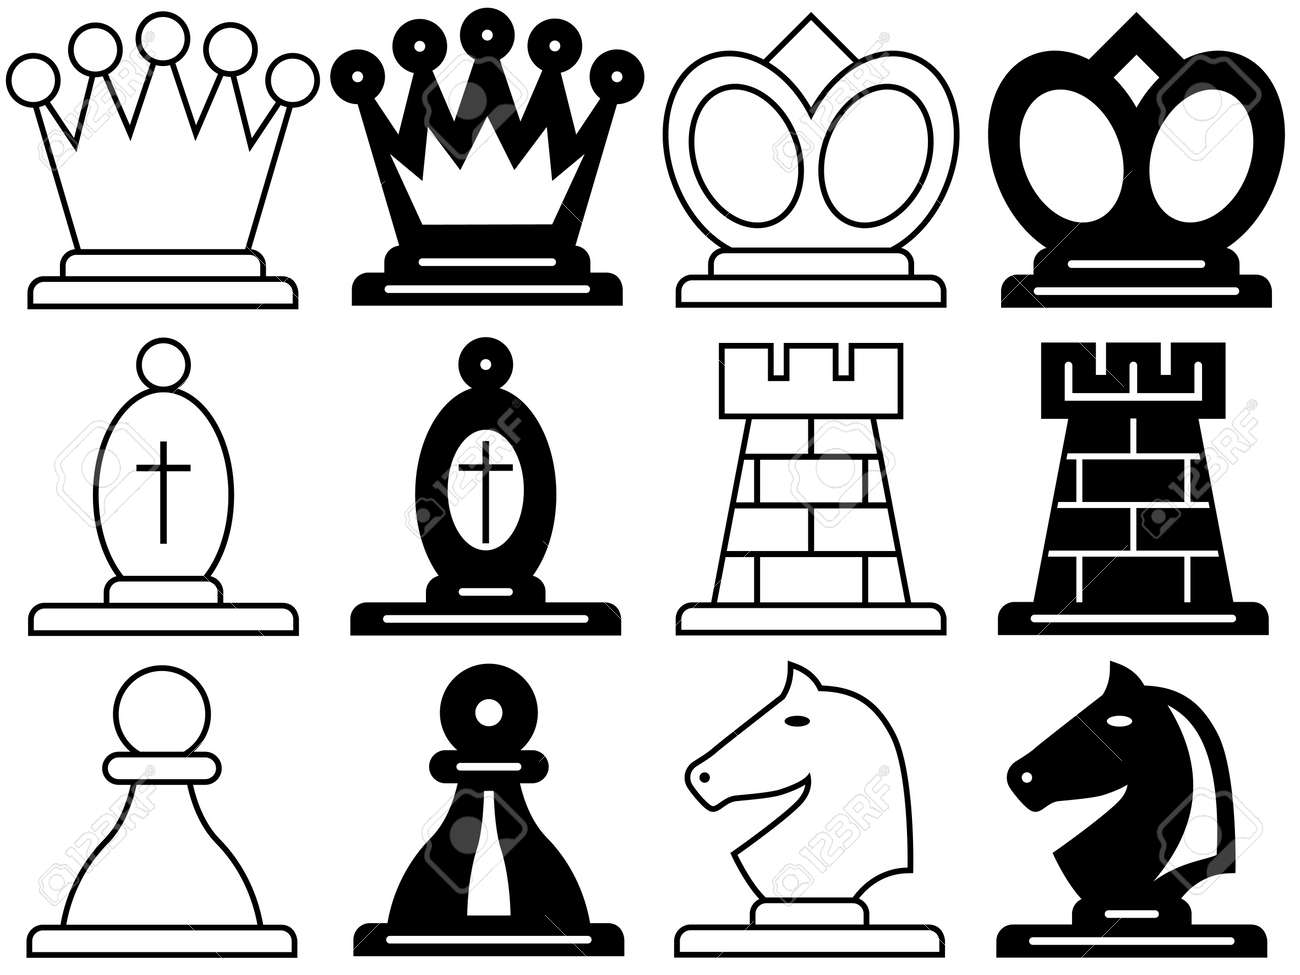 The Set Of A Chess Symbols Royalty Free Cliparts Vectors And Stock